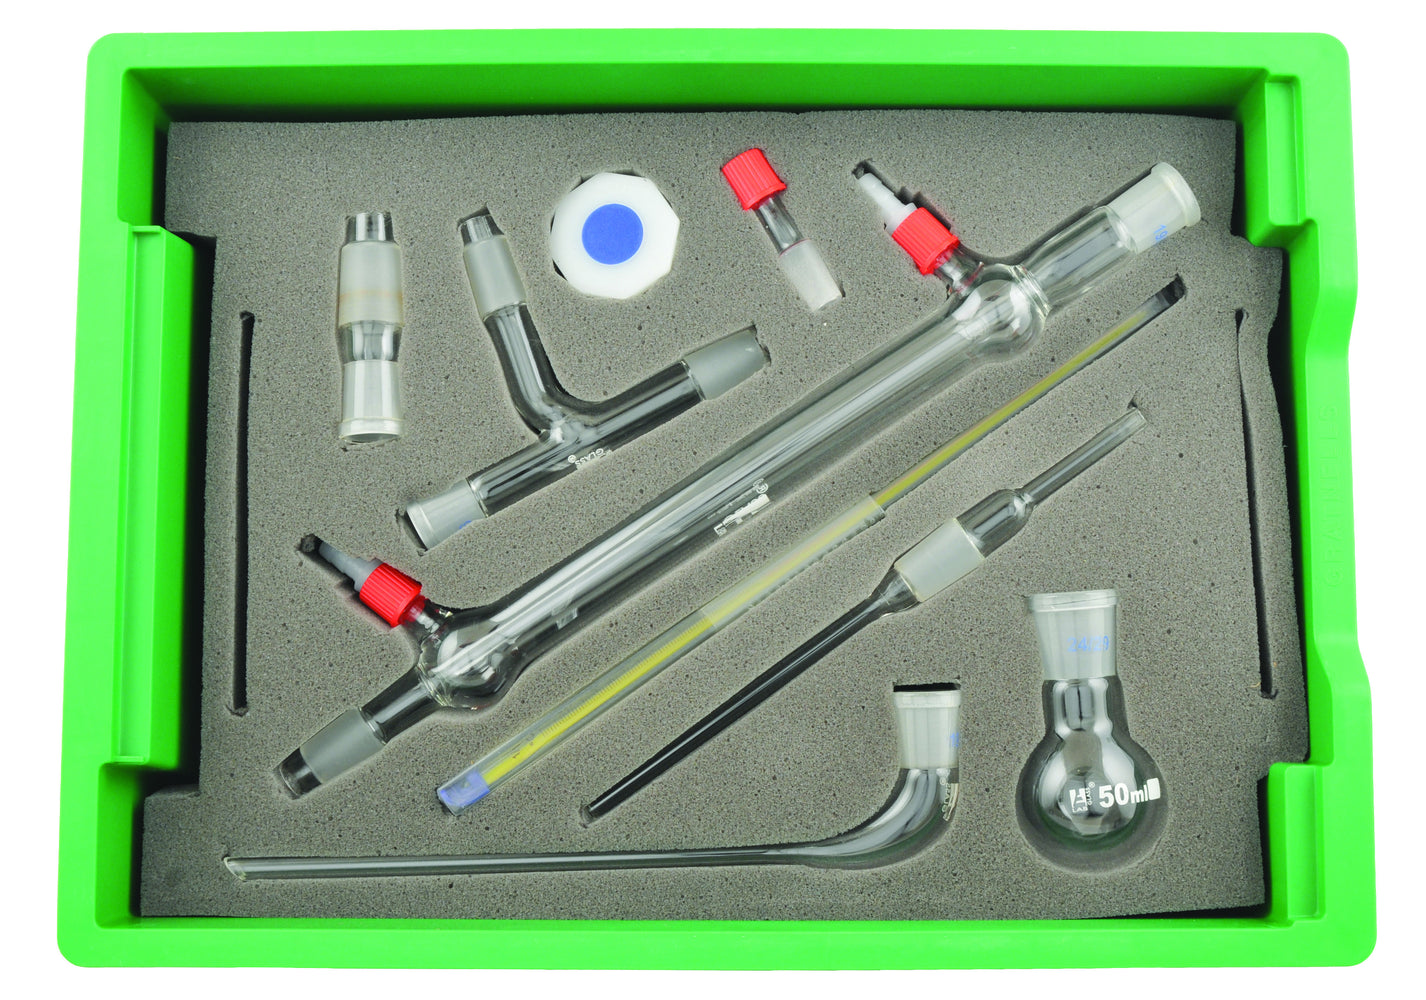 Set 34 BU Organic Chemistry Kit in Storage Tray with Lid